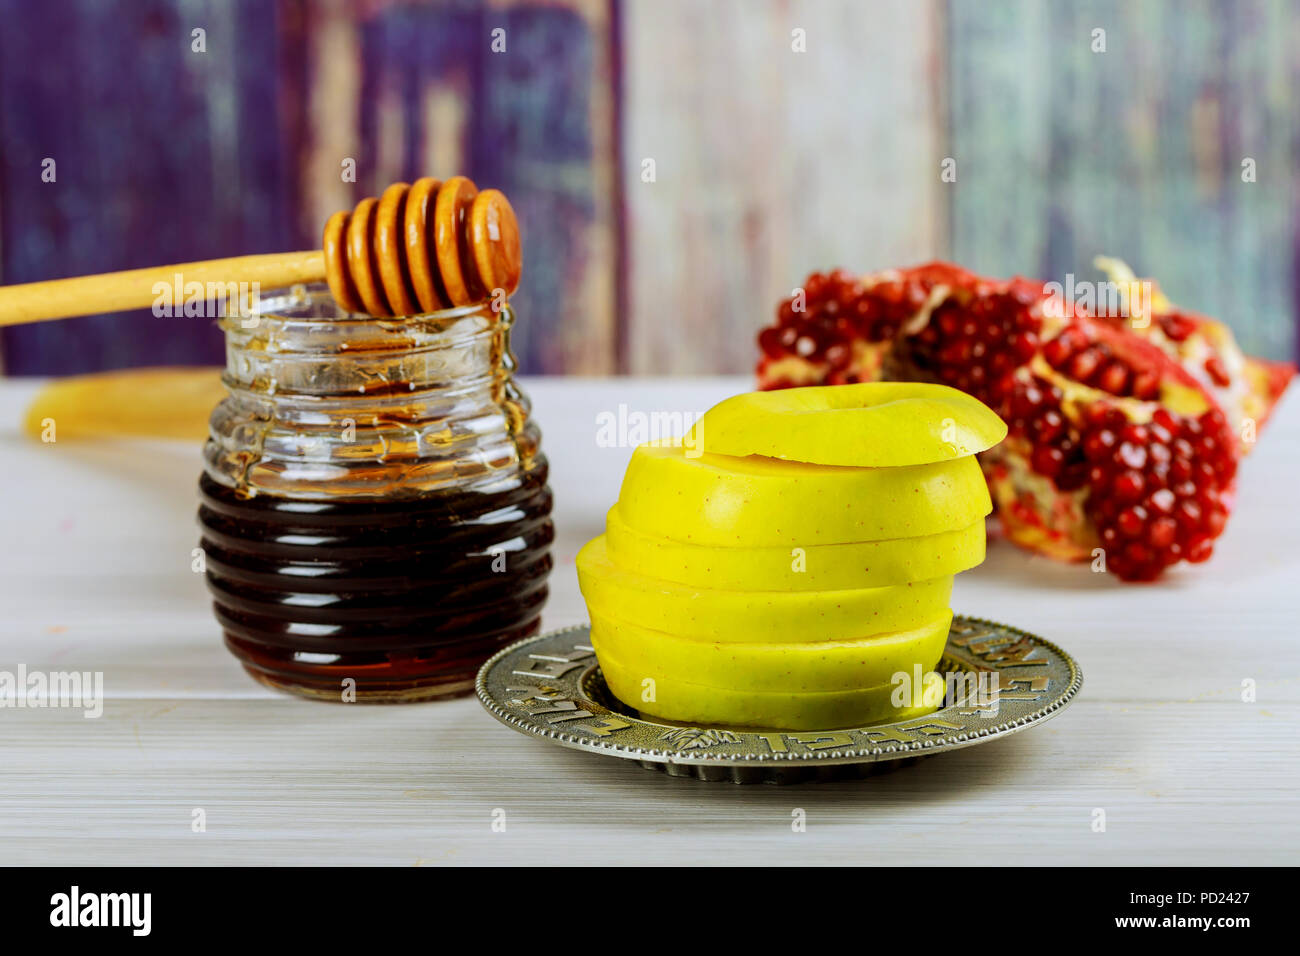 rosh hashanah jewesh holiday concept - shofar, torah book, honey, apple and pomegranate over wooden table. traditional holiday symbols. - Stock Image